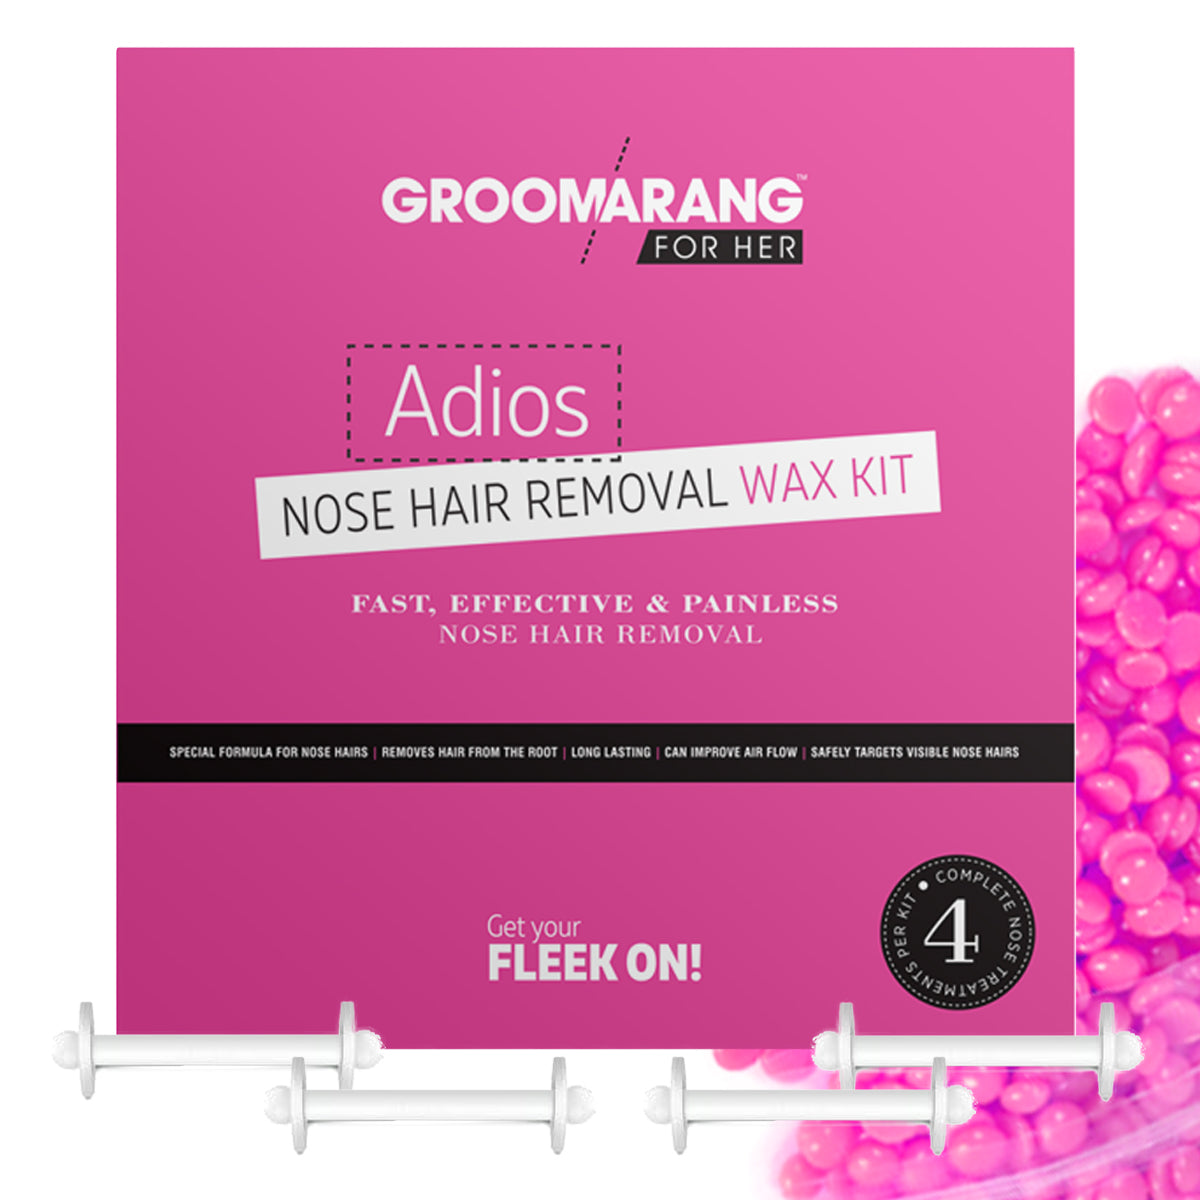 Groomarang For Her- Adios Nose Hair Removal Wax Kit For Her, Waxing Kits & Supplies - Image 4